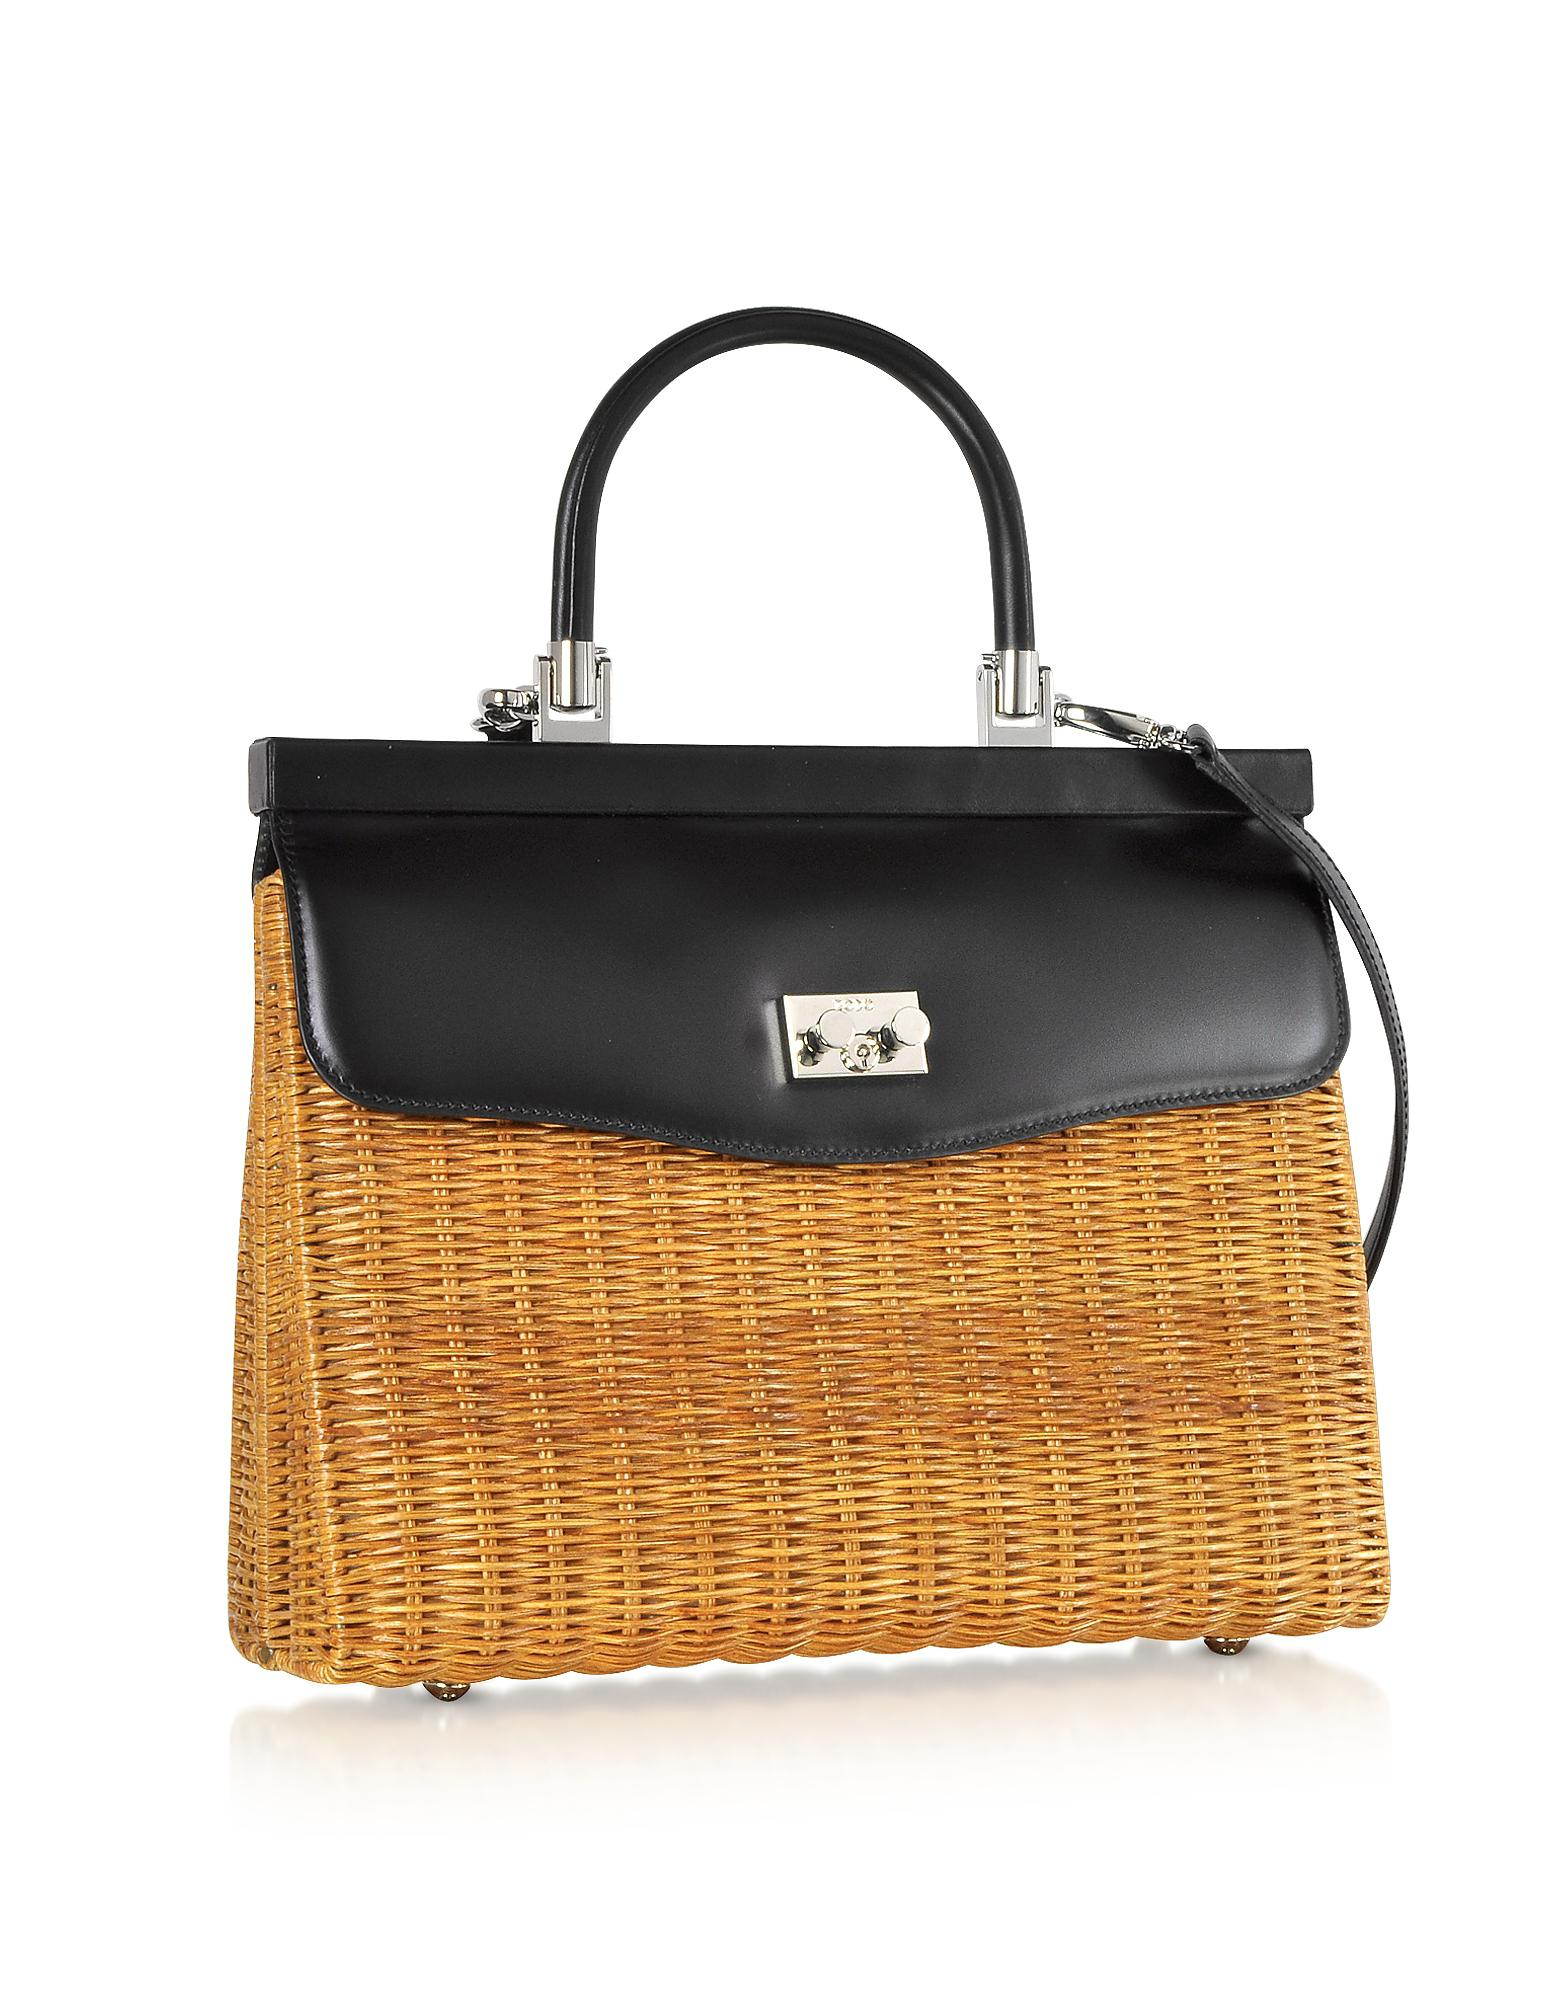 2a0264d8c714b Rodo Large Leather And Wicker Midollina Satchel Bag in Black - Lyst